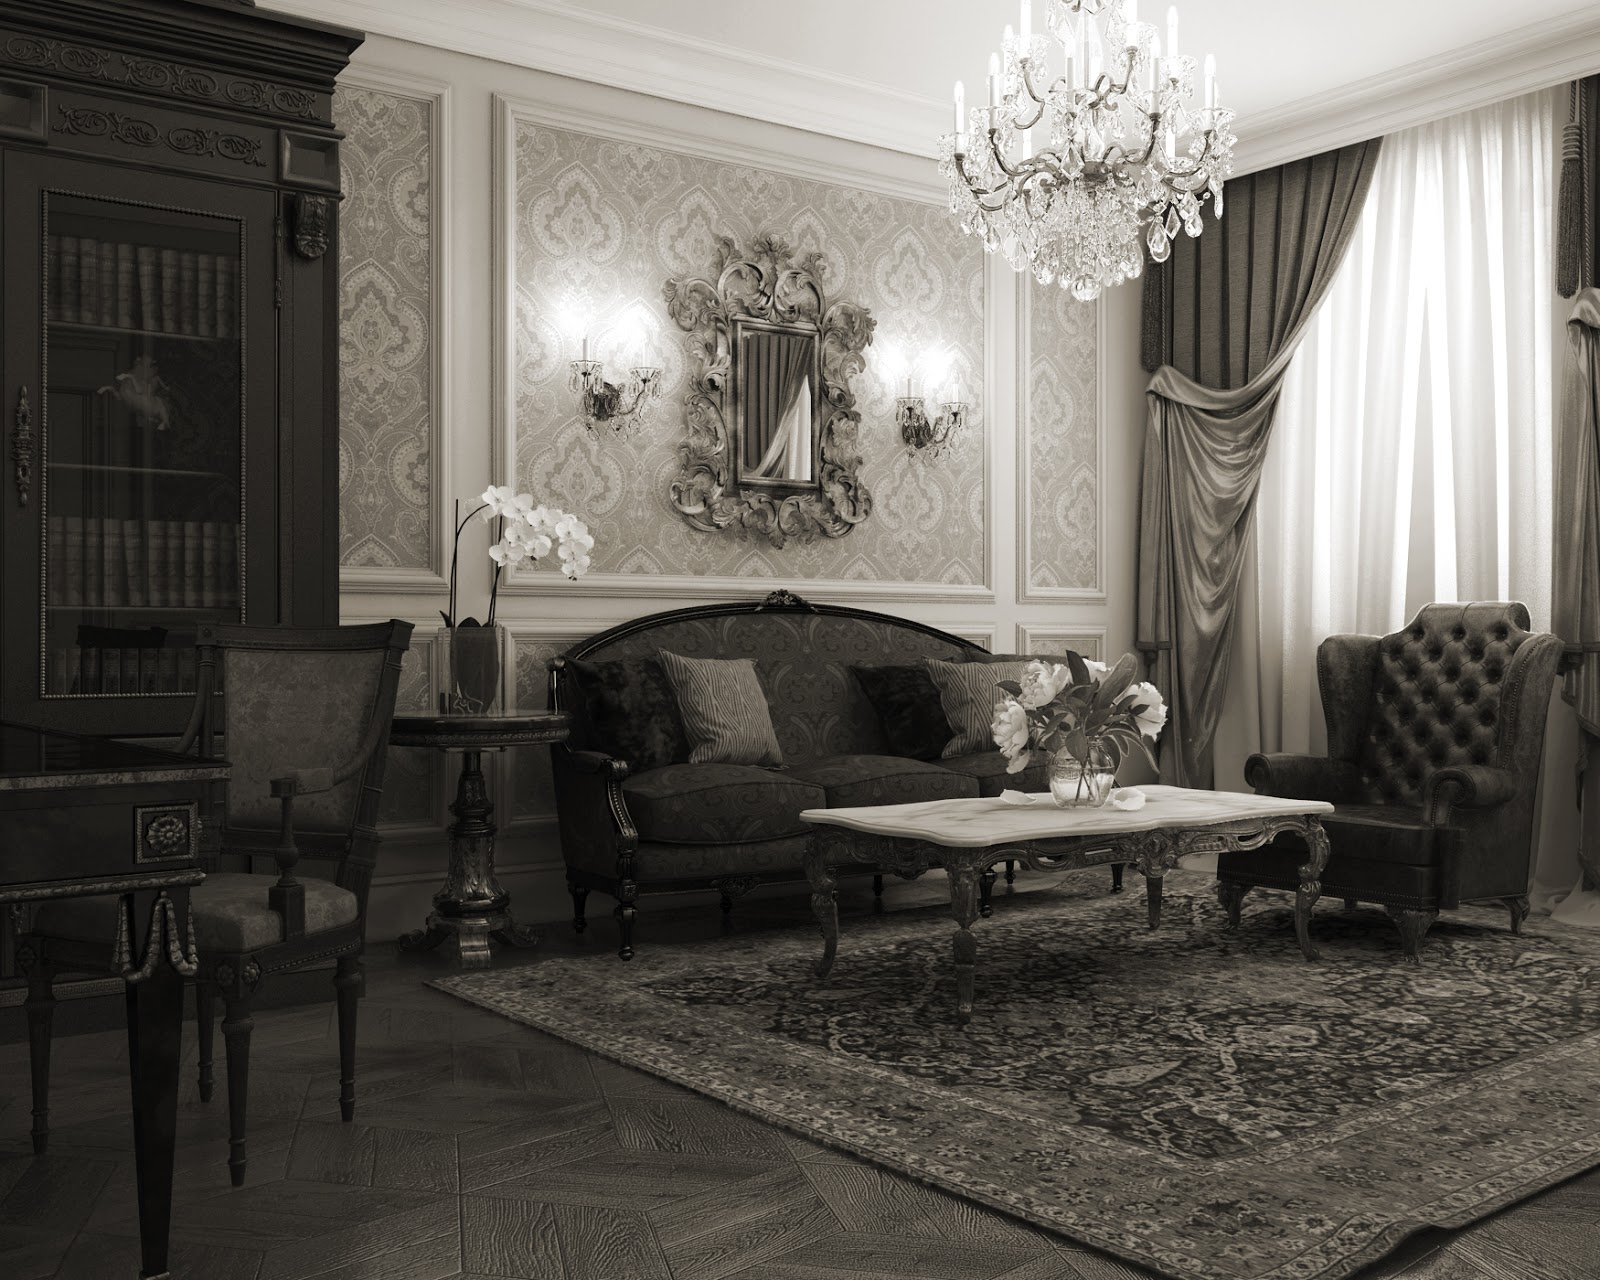 Darya girina interior design march 2015 - The Palace Park Ensemble Maryino Was Built At The Begining Of Xix Century According To A Project Of Kursk S Architect Carl Ivanovich Gofman